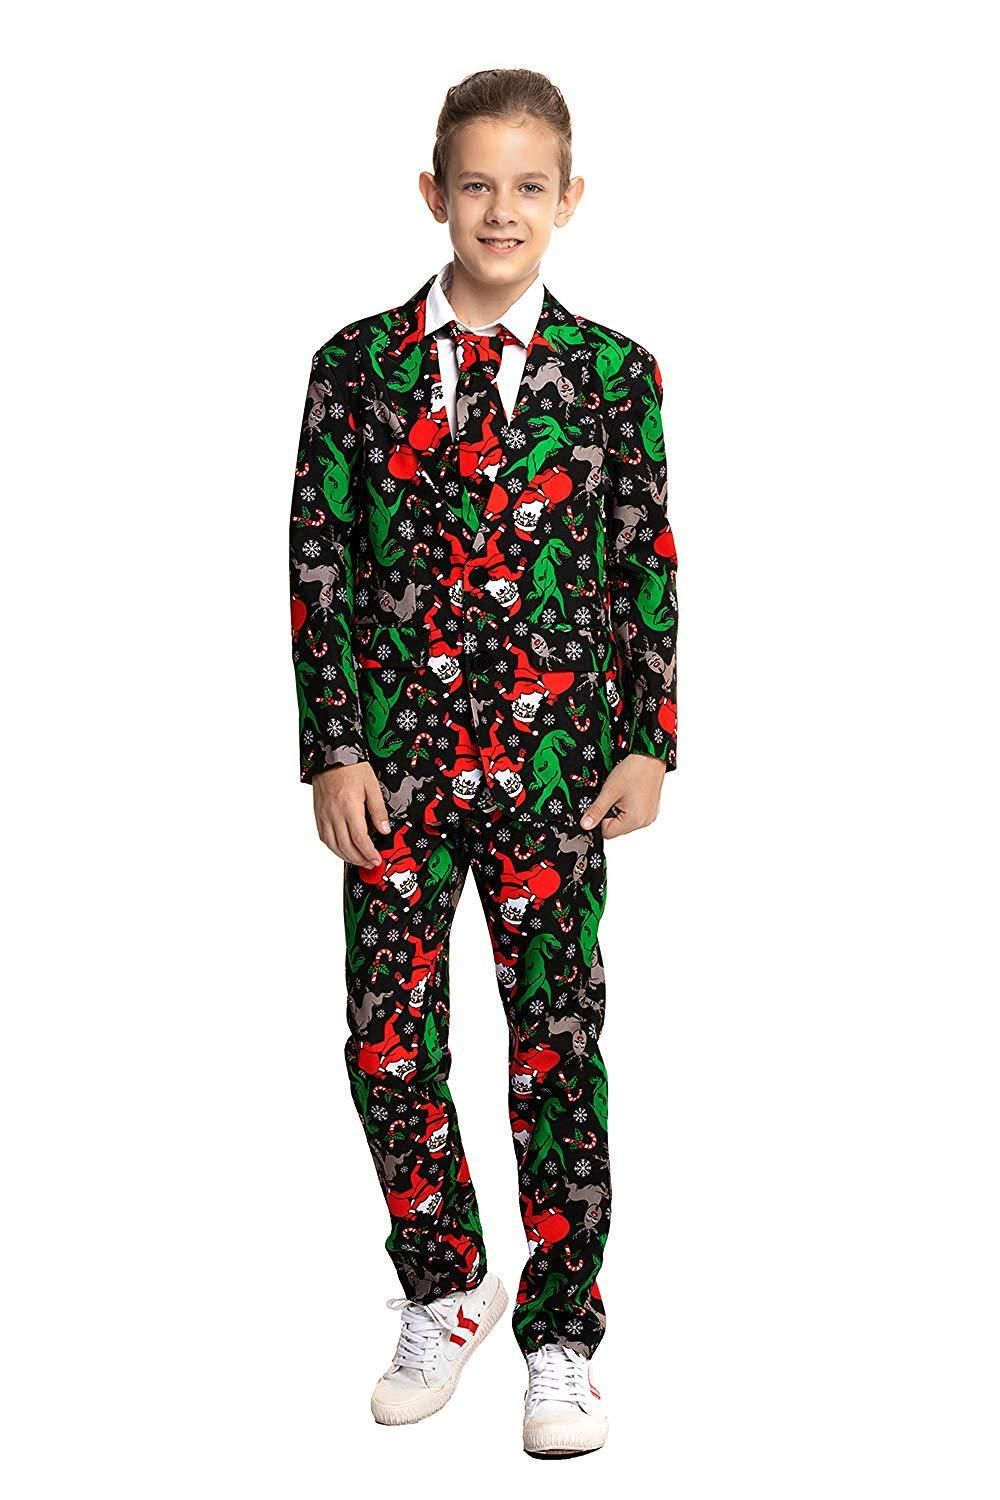 Mens Snowman Cool Costume Jacket /& Tie Christmas Party Novelty Xmas Fancy Dress